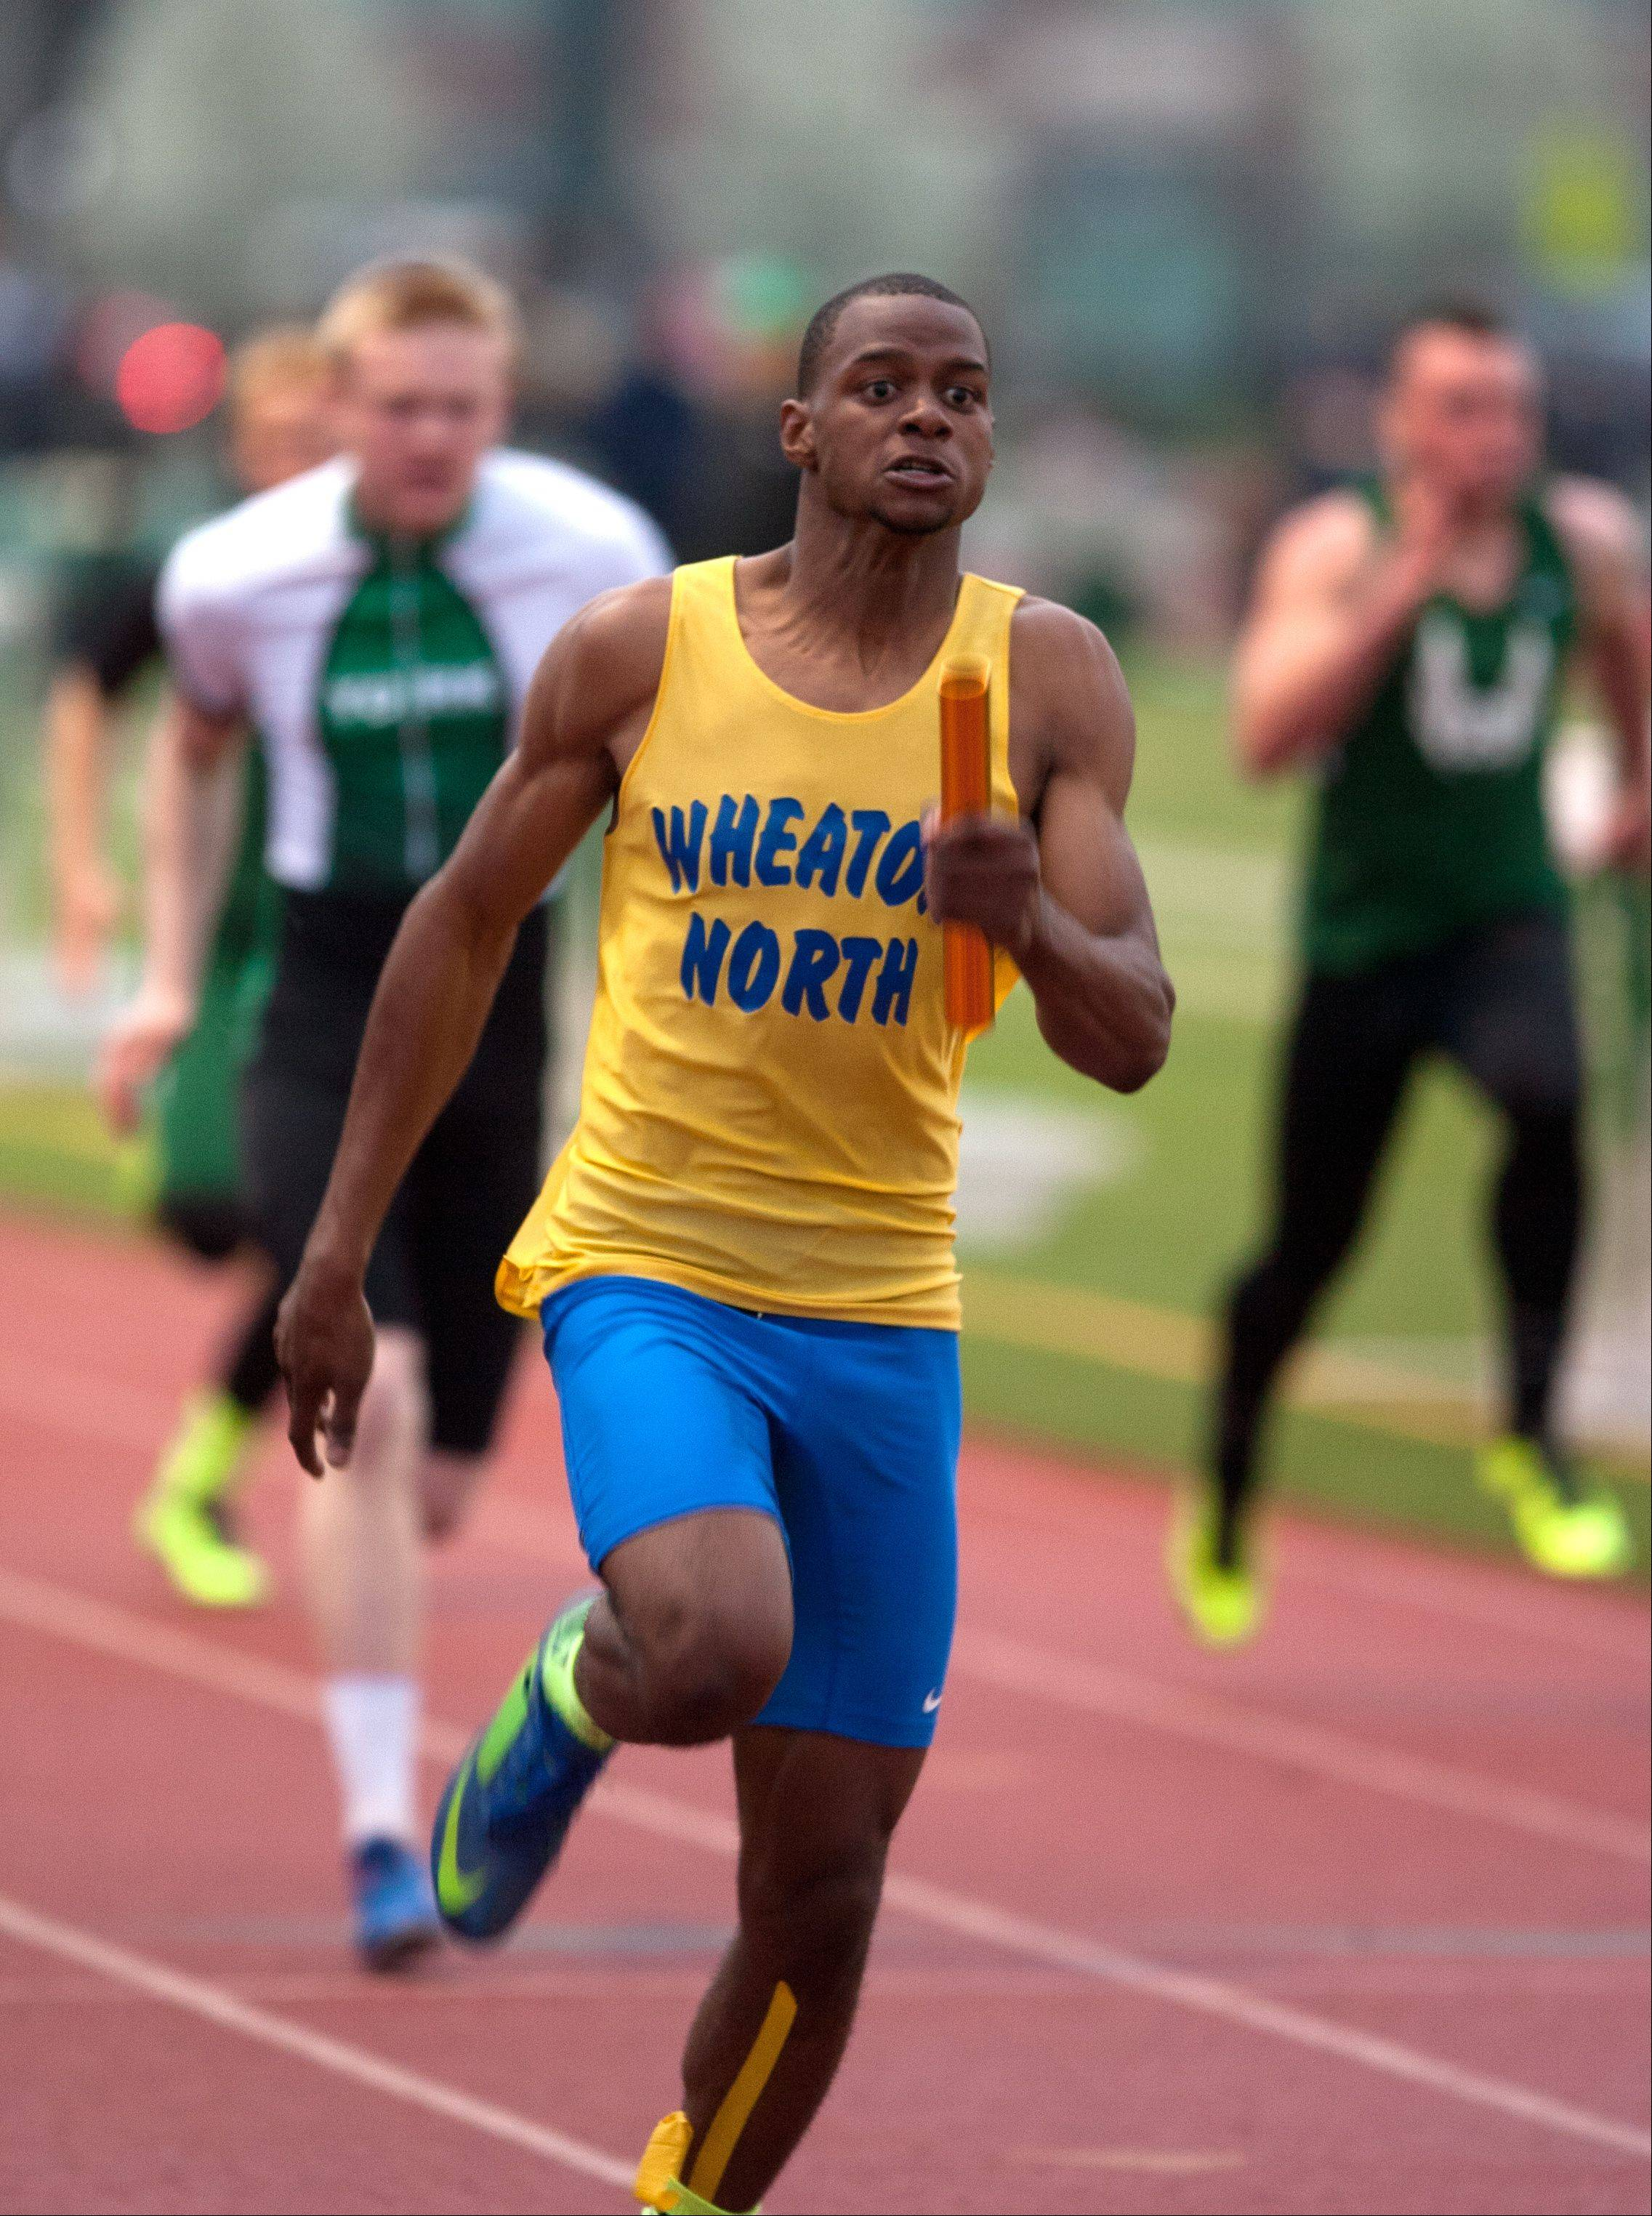 Wheaton North's Zach Gordon anchors a win in the second heat of the 4x100 meter run, during the DuPage County boys track invitational at York High School.